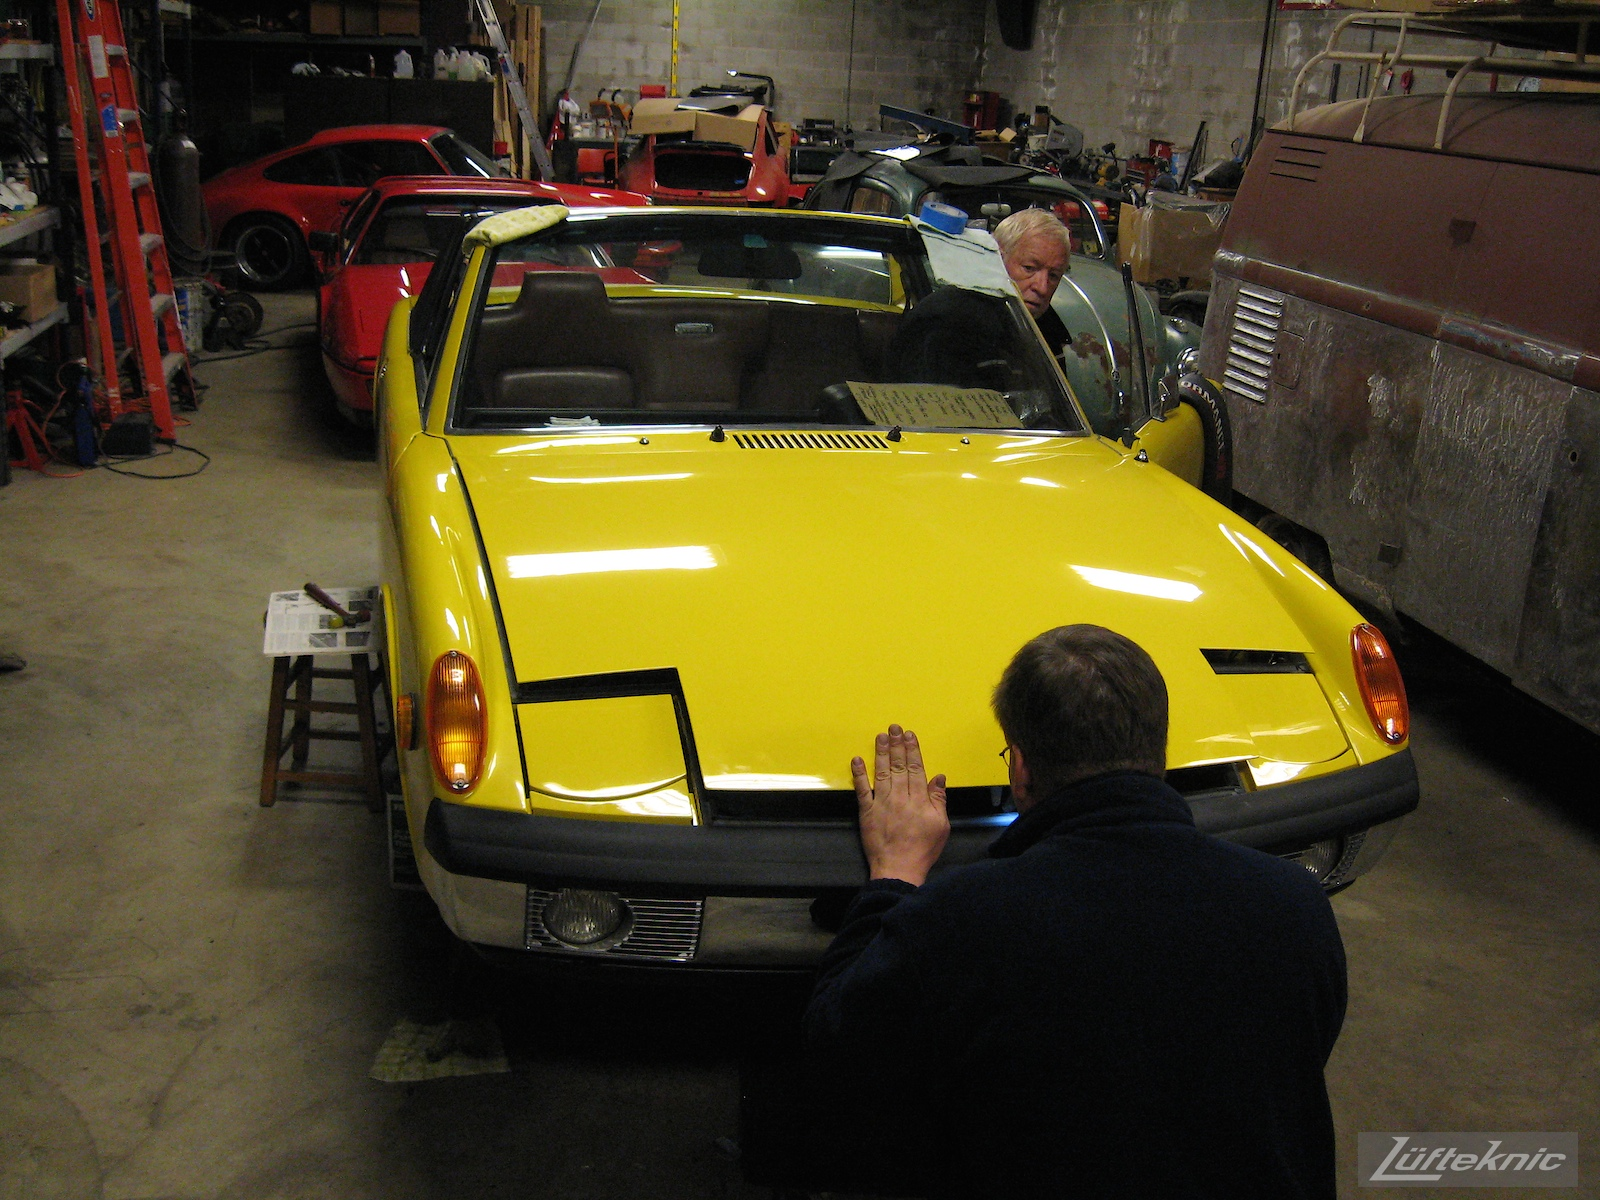 Checking hood clearance on a restored yellow Porsche 914 at Lufteknic.